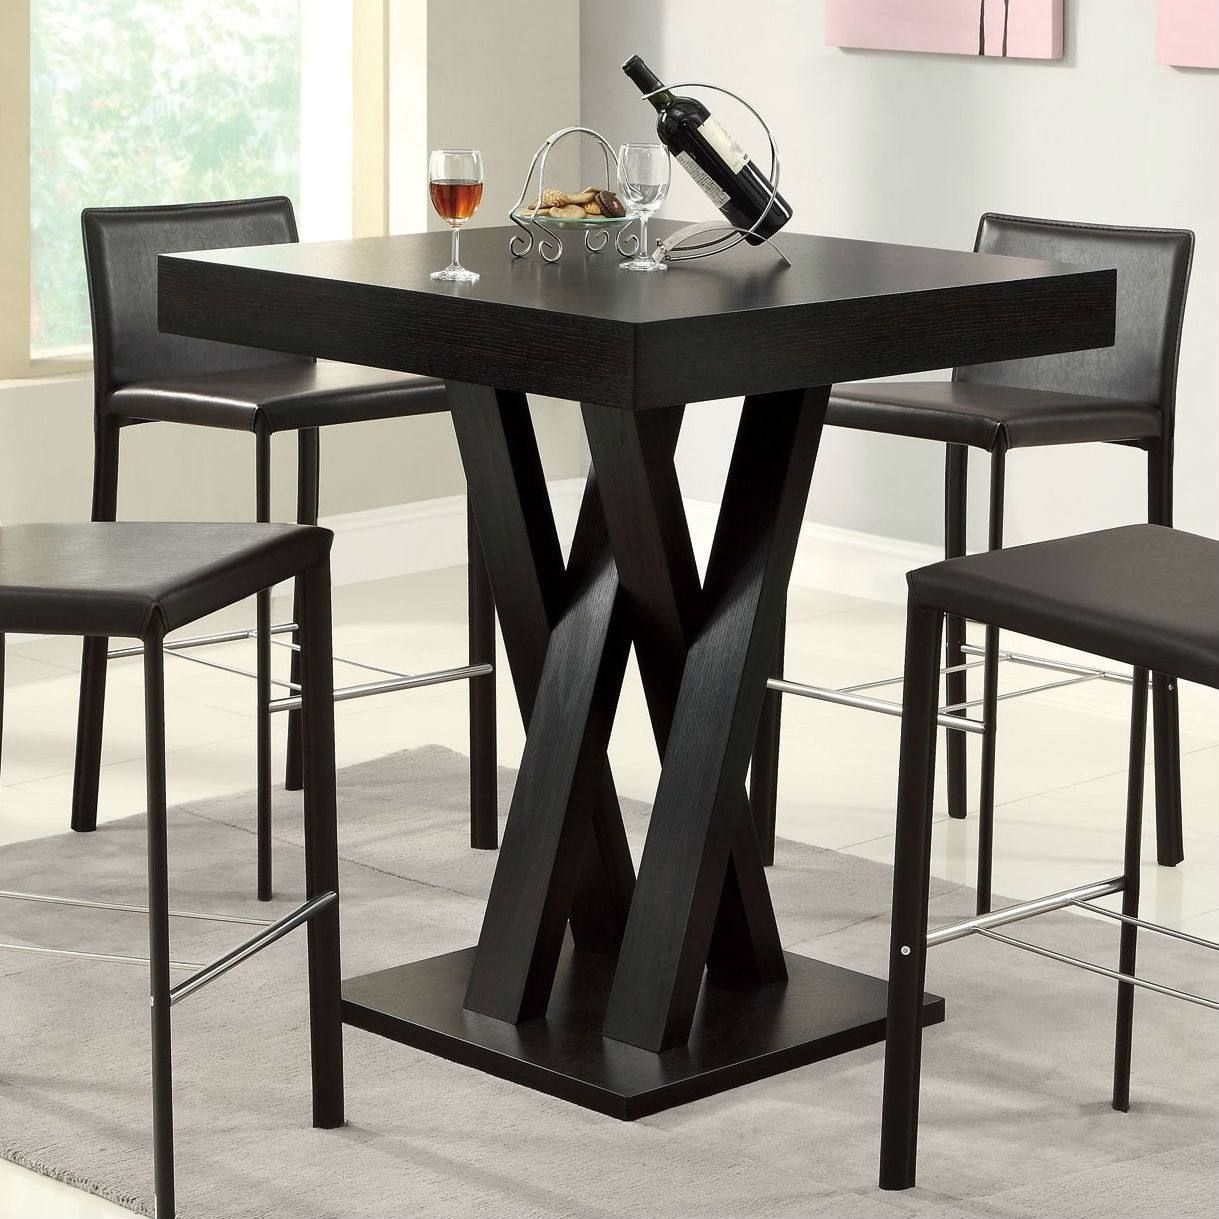 Modern 40 Inch High Square Dining Table In Dark Cappuccino Finish High Dining Table Square Dining Tables High Top Tables [ 1219 x 1219 Pixel ]